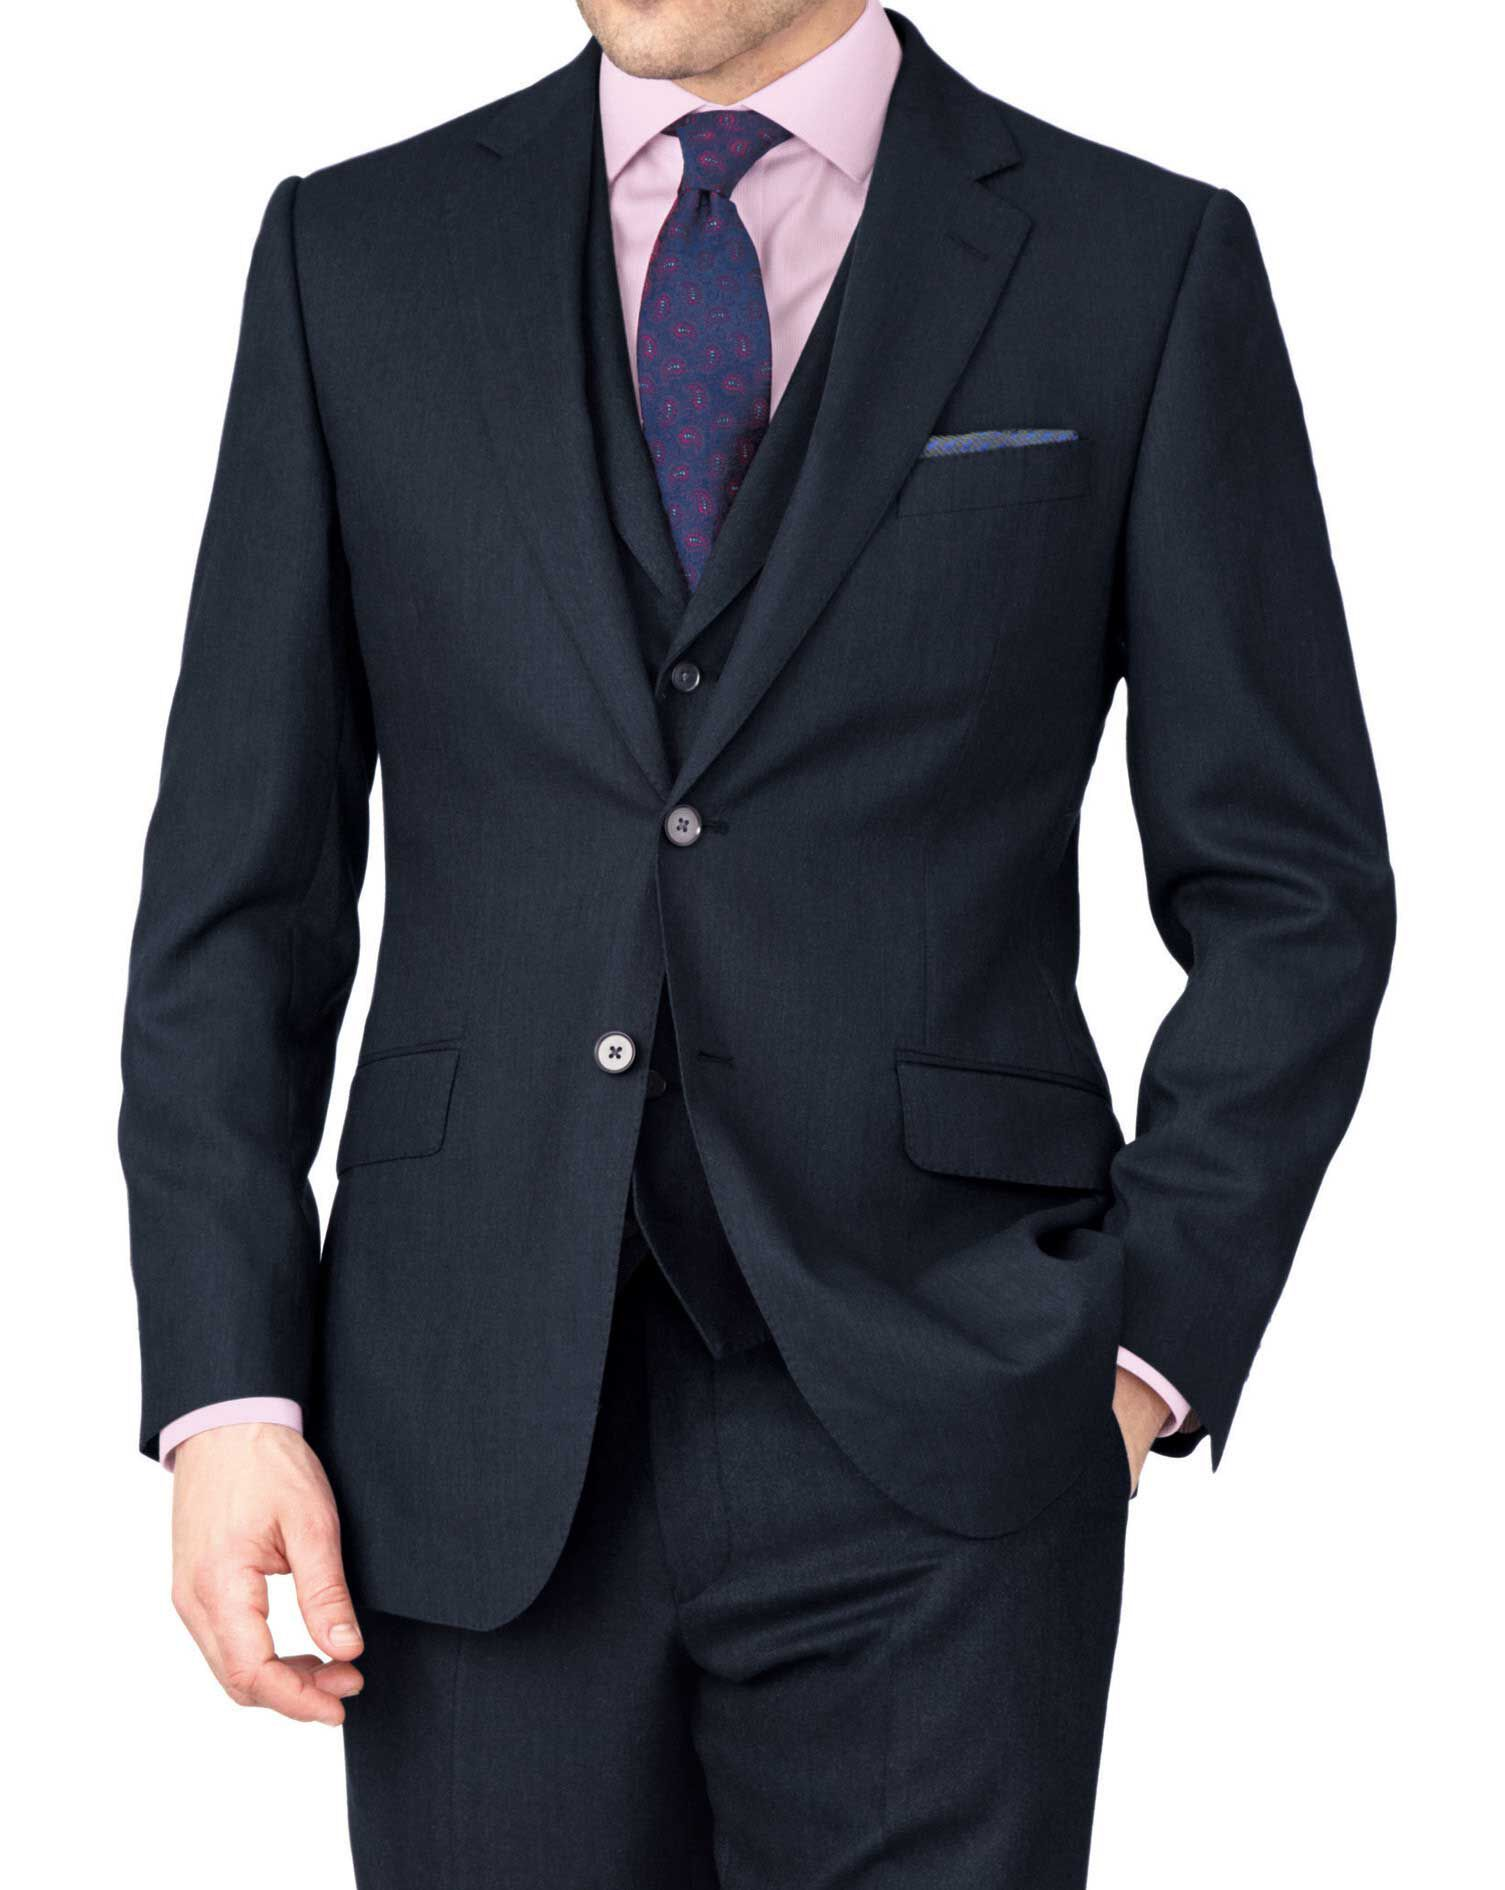 Indigo Classic Fit Saxony Business Suit Wool Jacket Size 38 by Charles Tyrwhitt